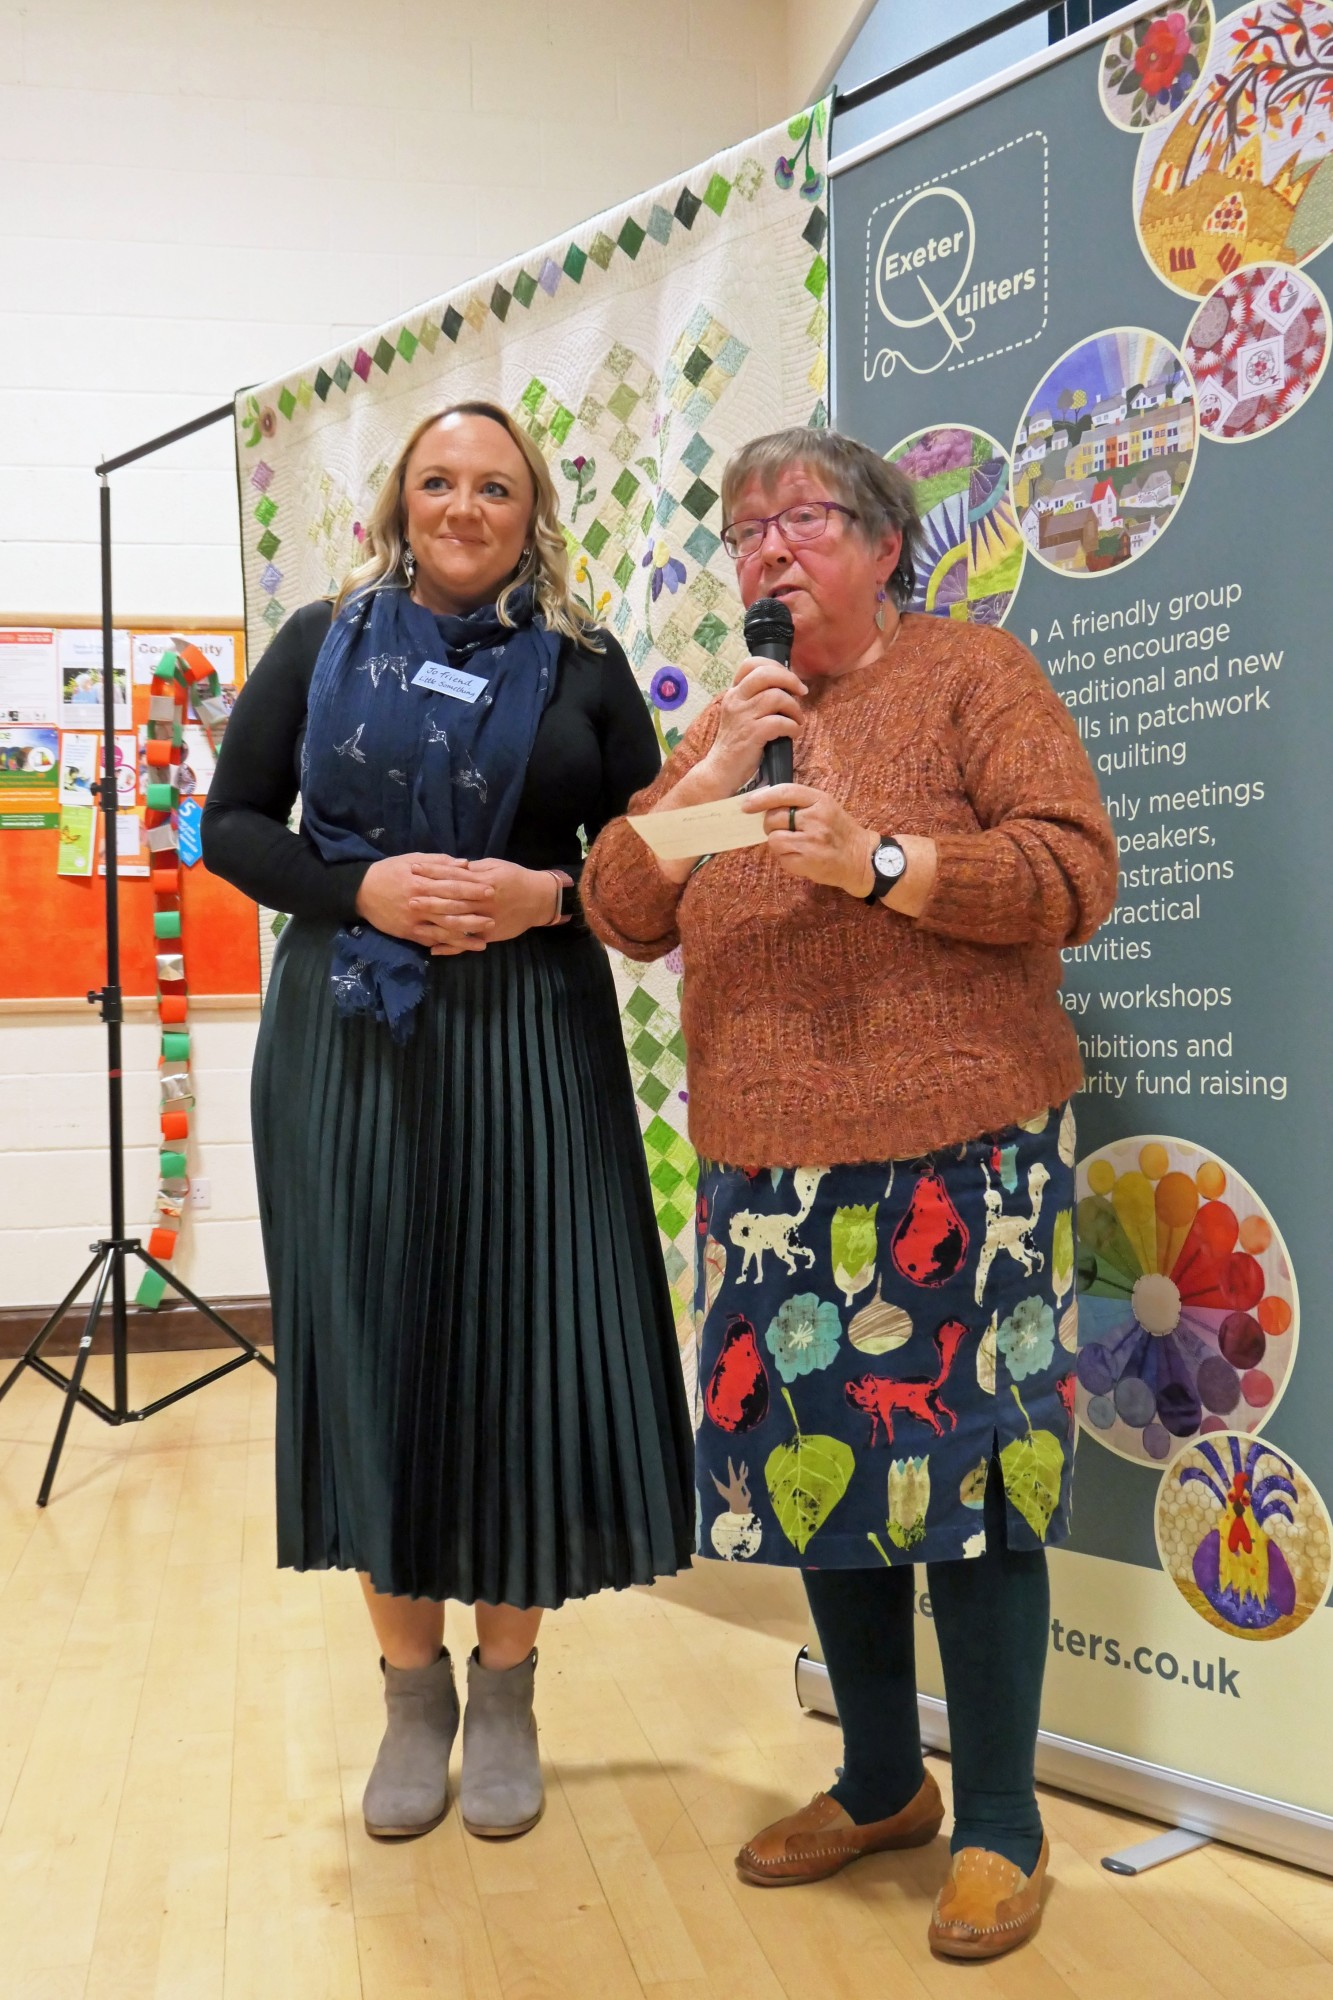 Exeter Quilters raise £1,400 to support Perinatal services